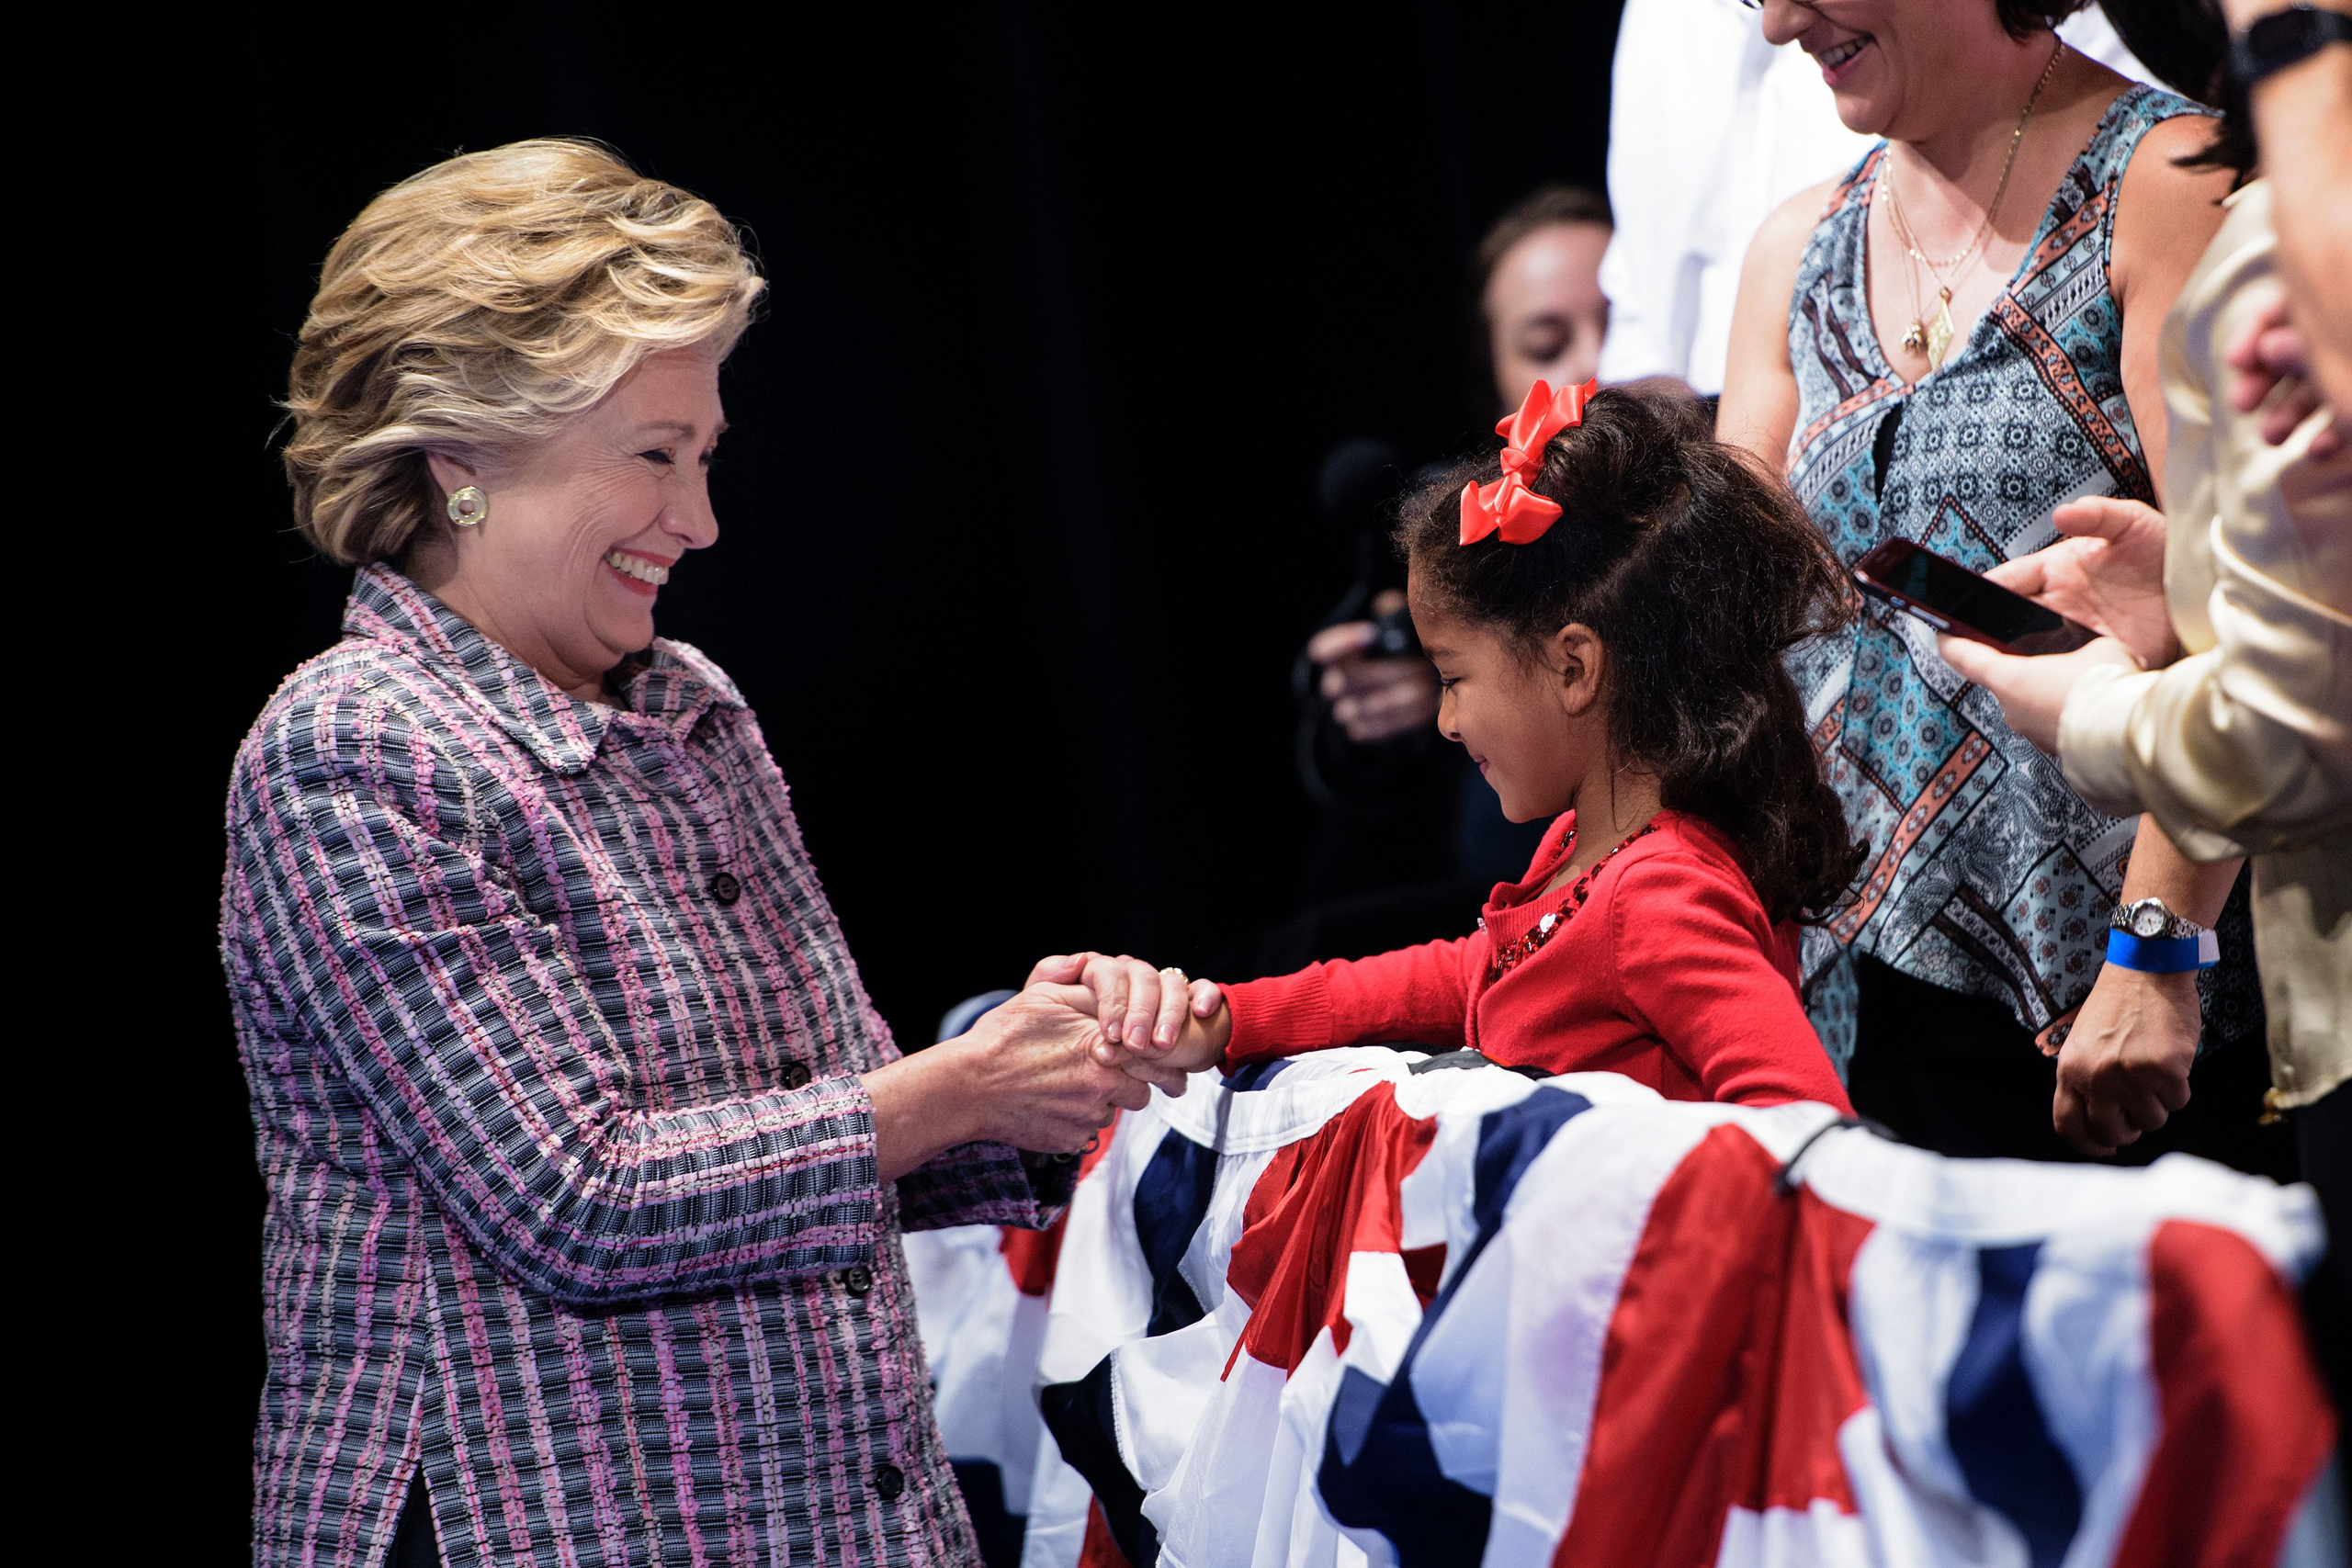 Hillary Clinton arrives to speak during a rally about national service at the Sunrise Theatre in Fort Pierce, Florida, on Sept. 30, 2016.